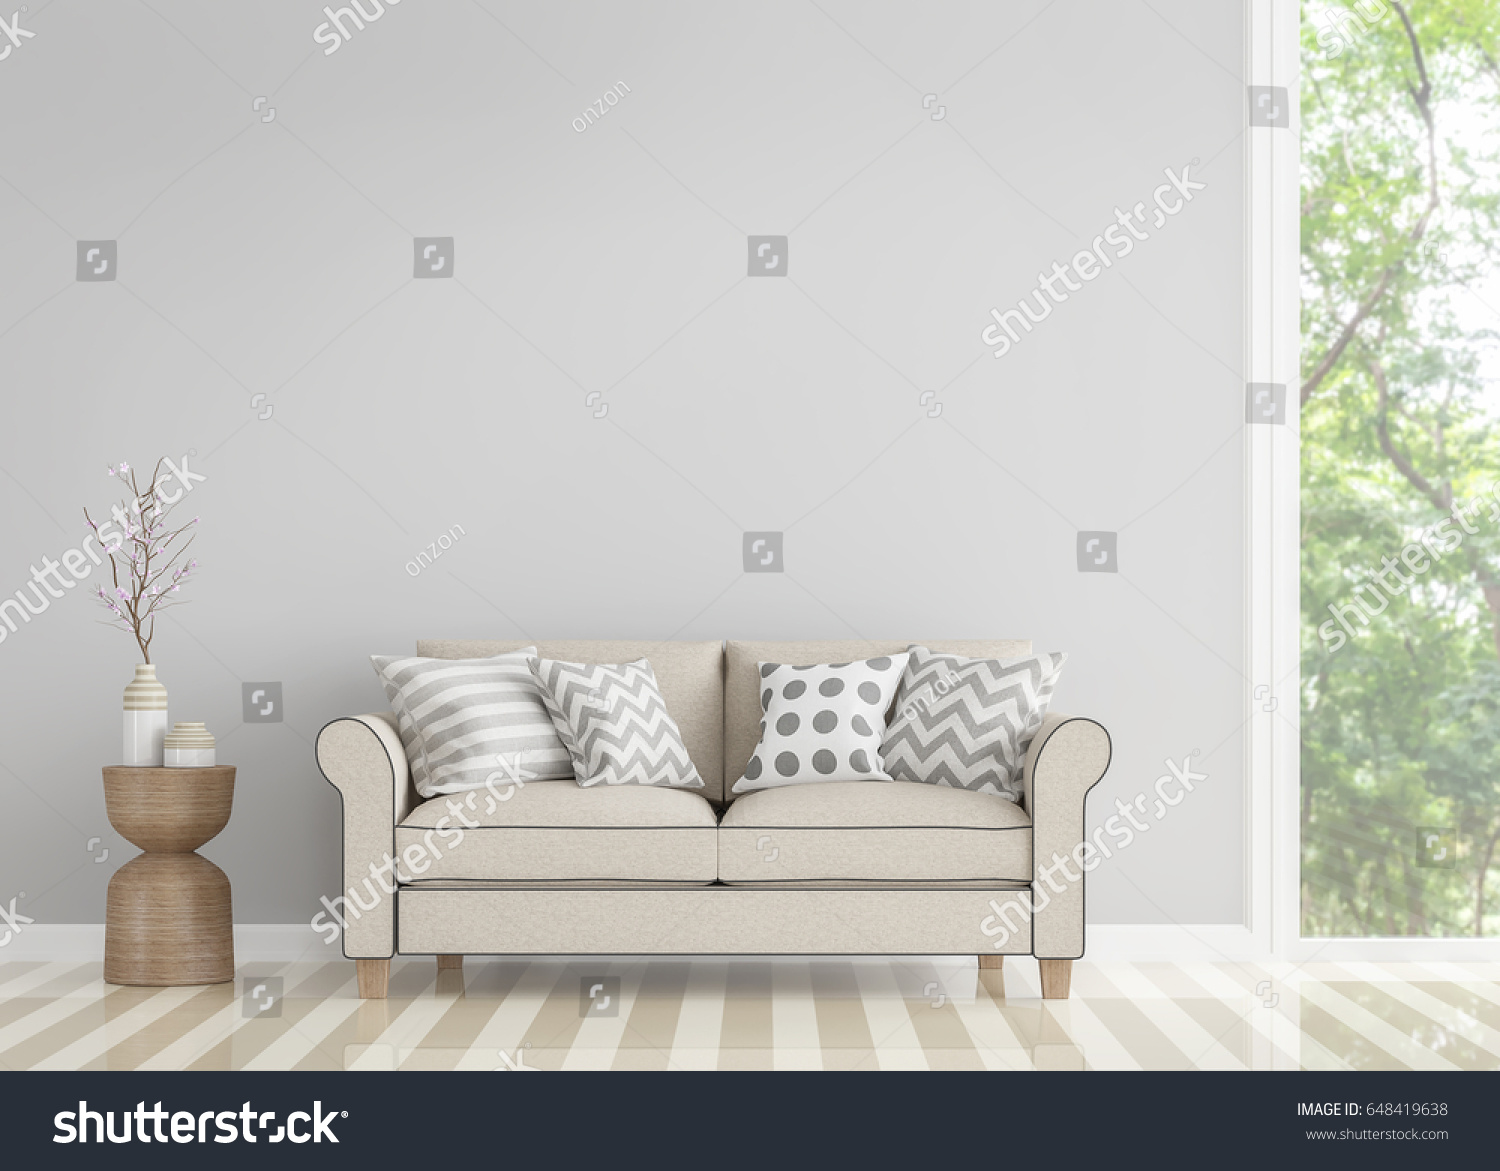 Modern Vintage Living Room 3 D Rendering Stock Illustration ...